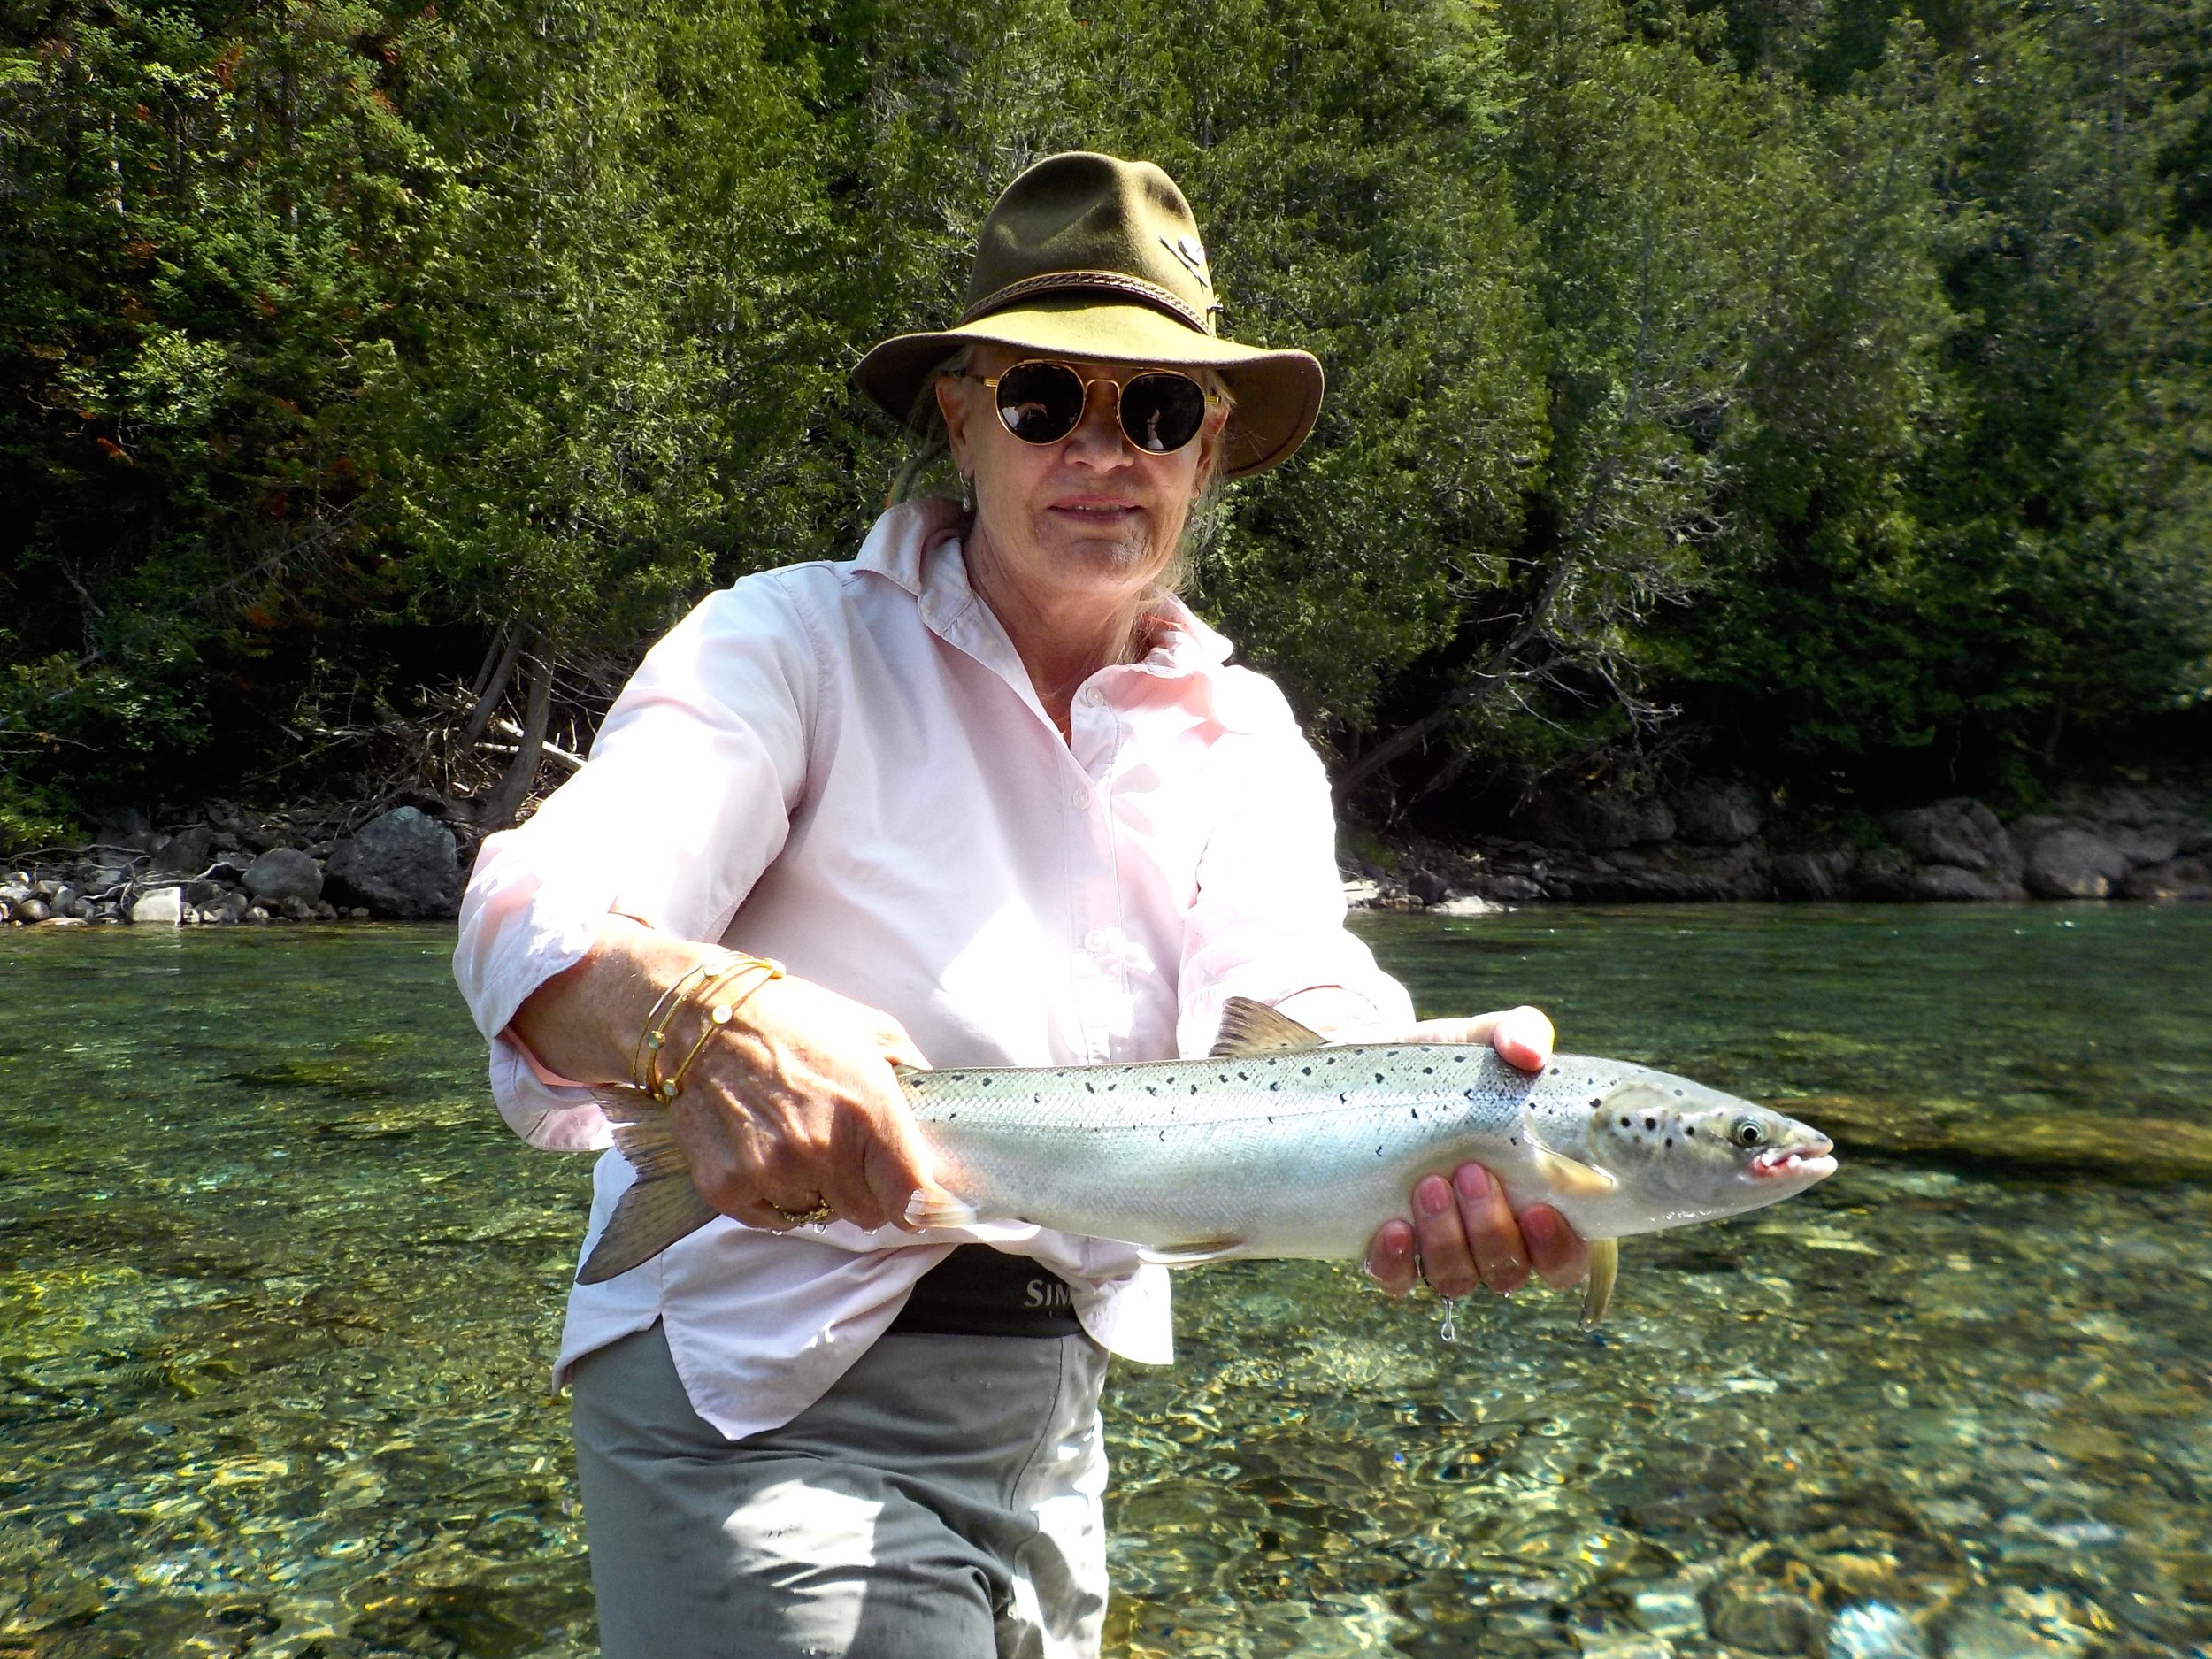 Isabelle Jewell has been coming to Camp Bonaventure for many years, she not only a good friend but a fine angler, congratulations Isabelle!